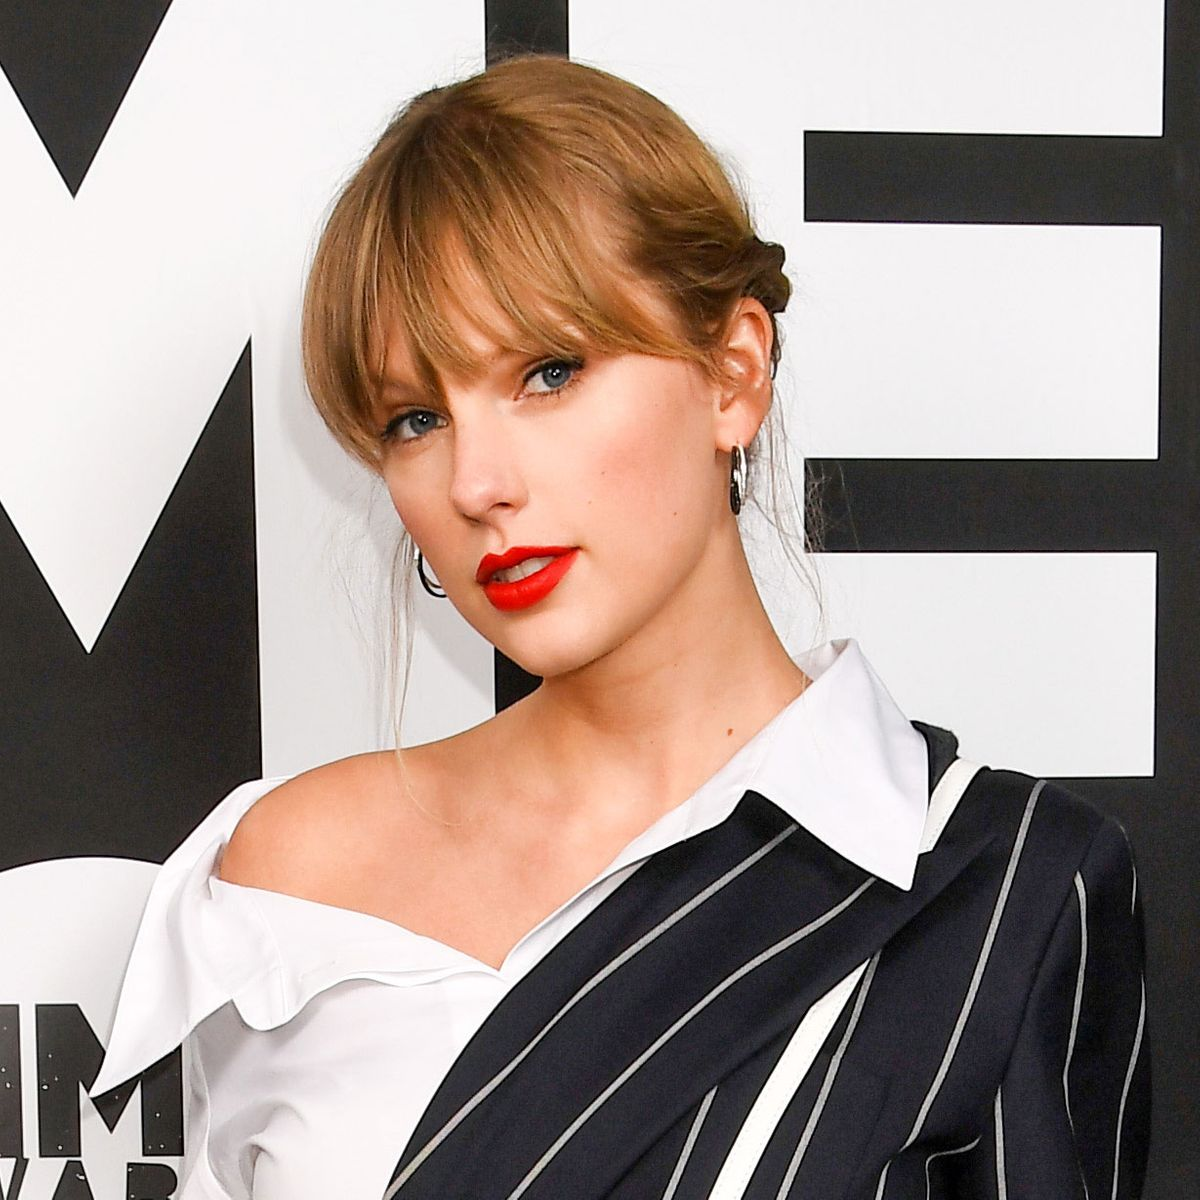 Taylor Swift Tweets at Donald Trump 'We Will Vote You Out'